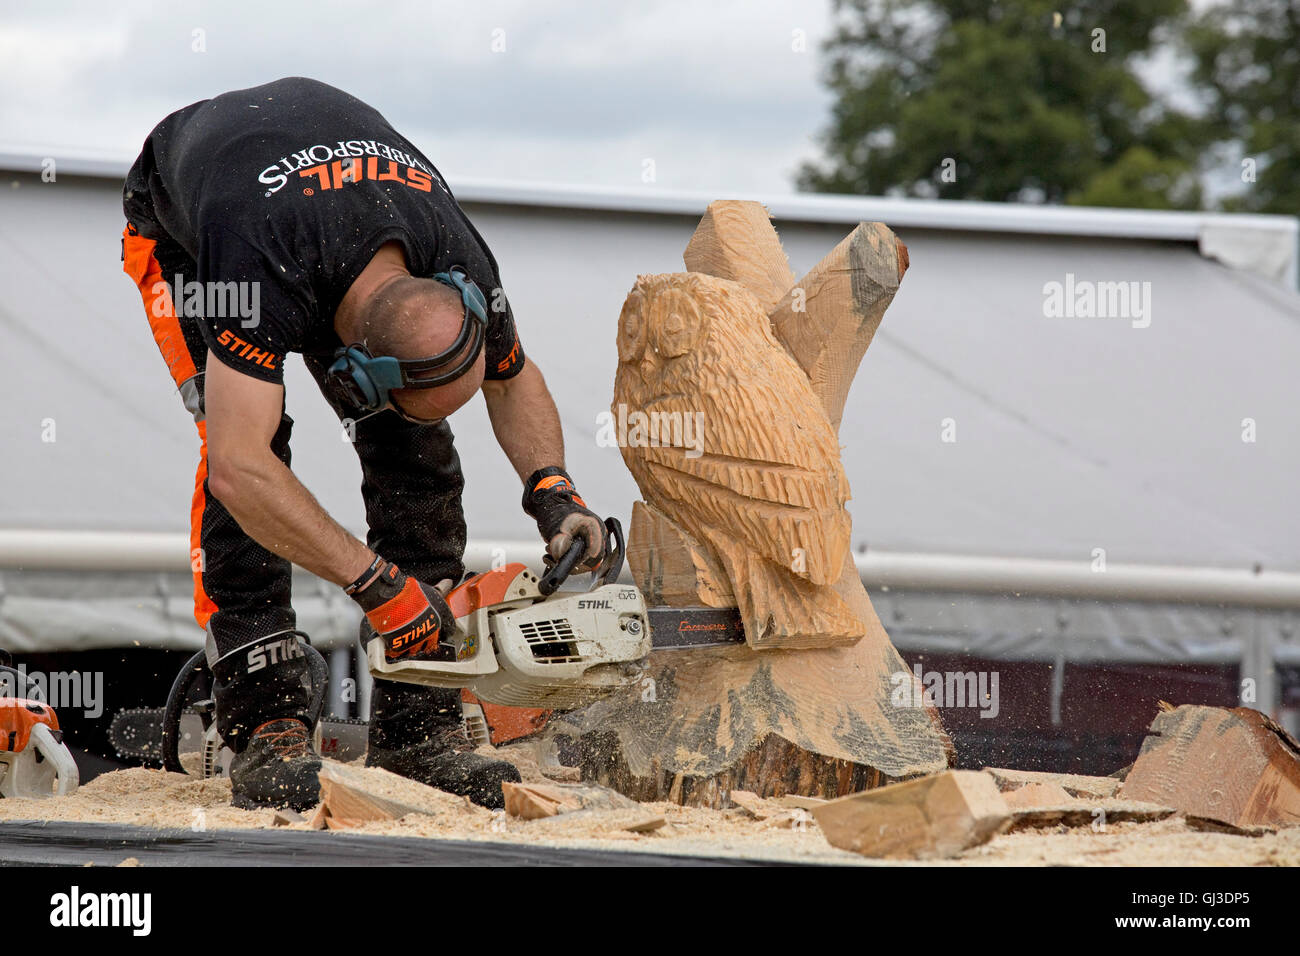 Chainsaw carving stock photos